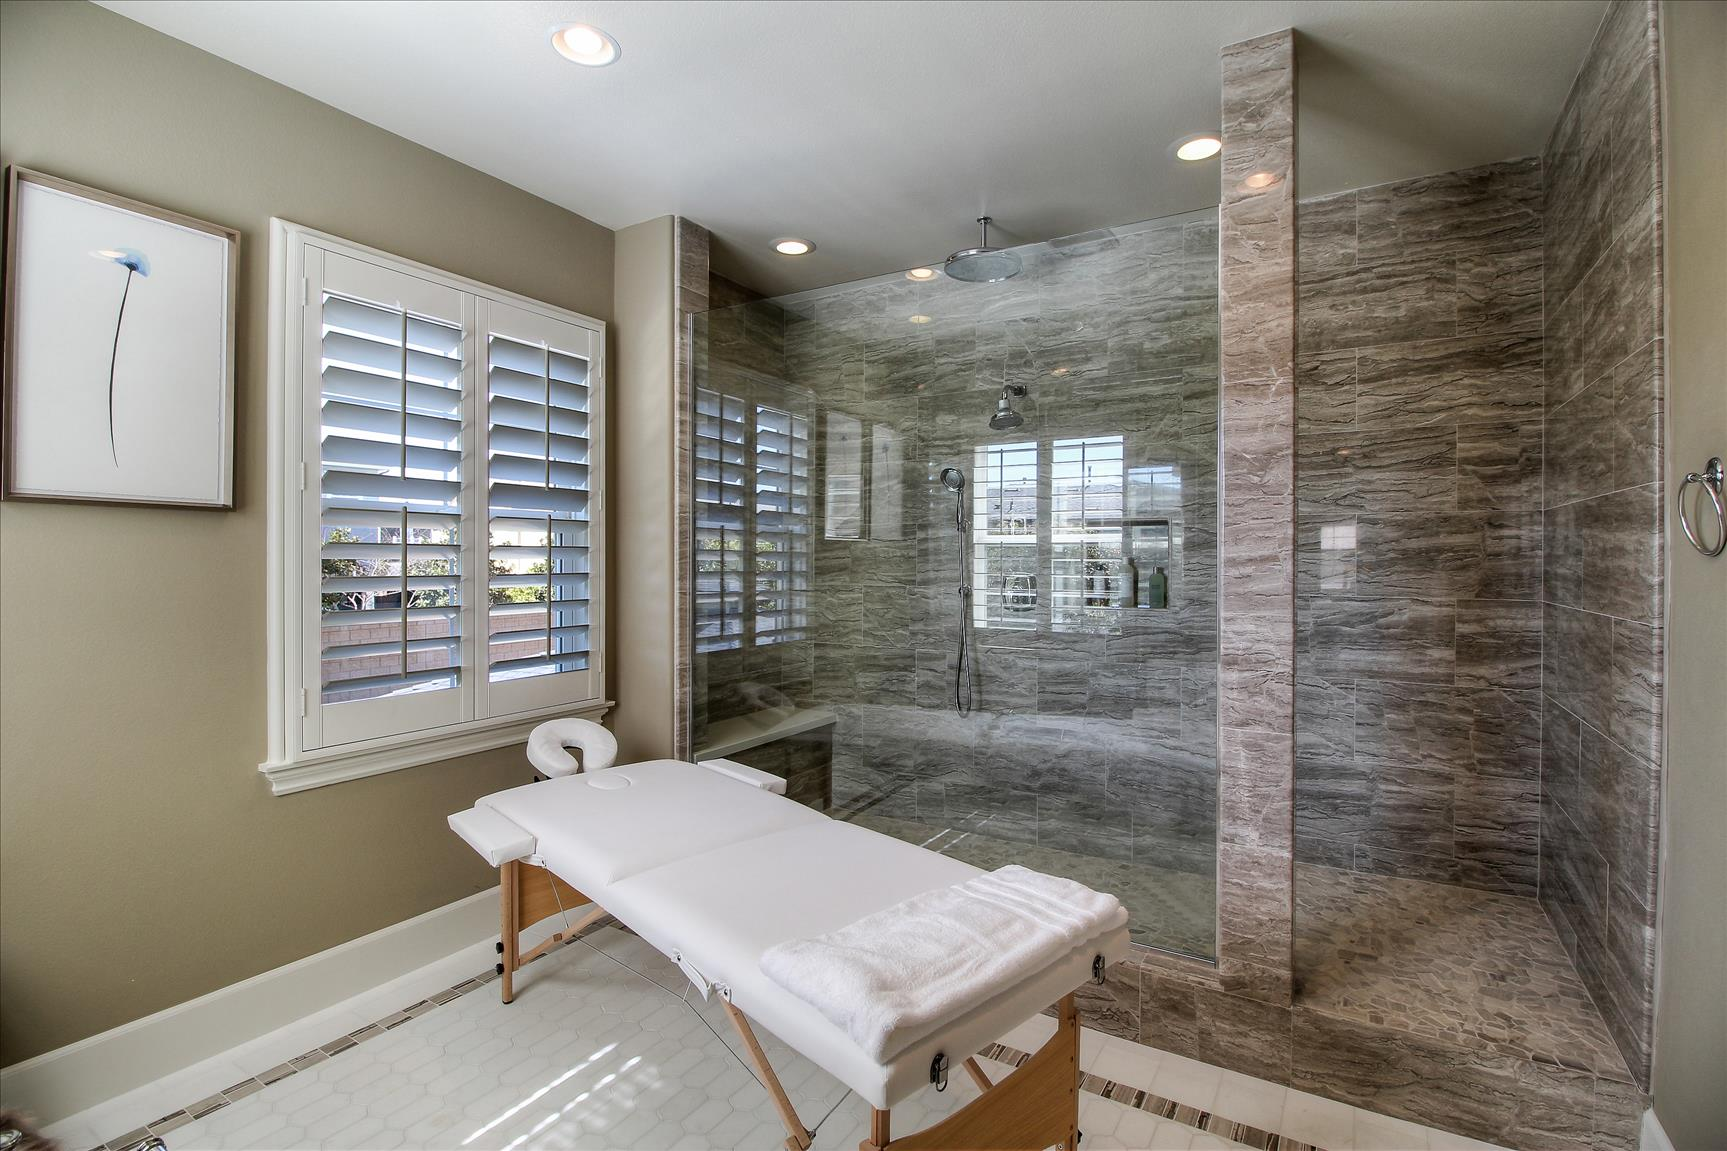 17471 Kennebunk Ln, Huntington Beach, CA  9264964.jpg